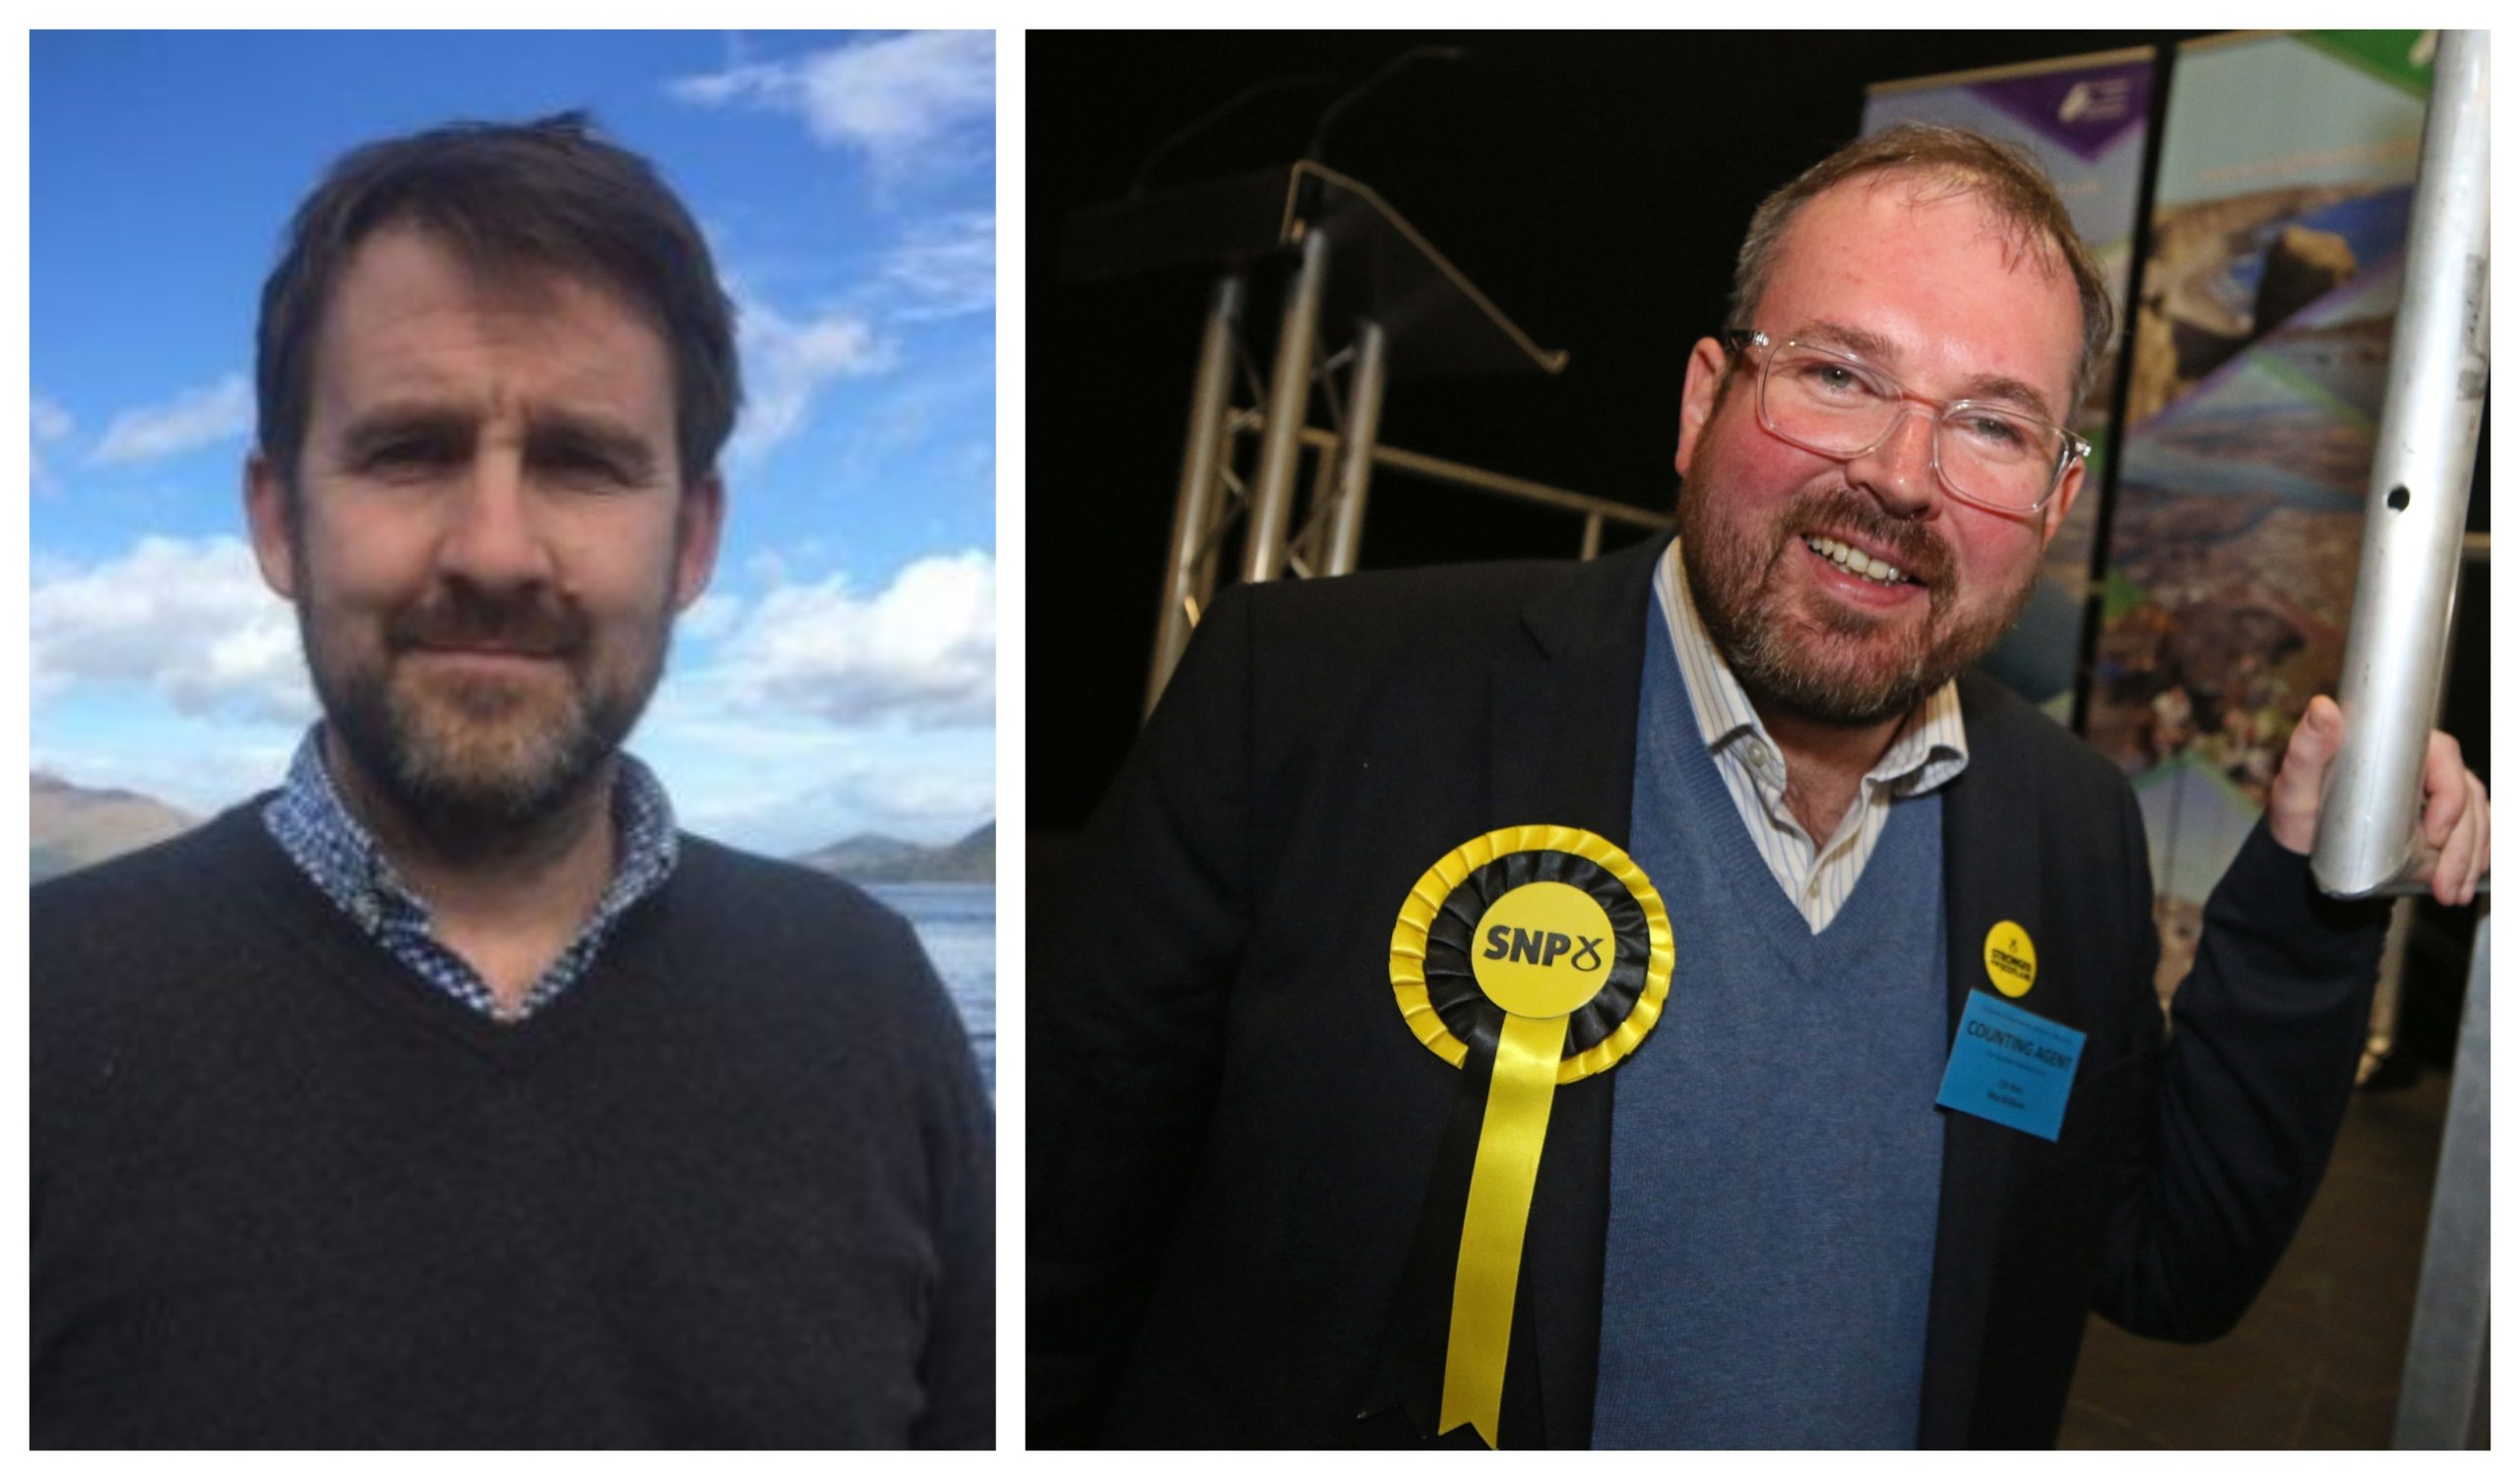 Lochaber SNP councillor Niall McLean (left) and SNP councillor Ron MacWilliam (right).